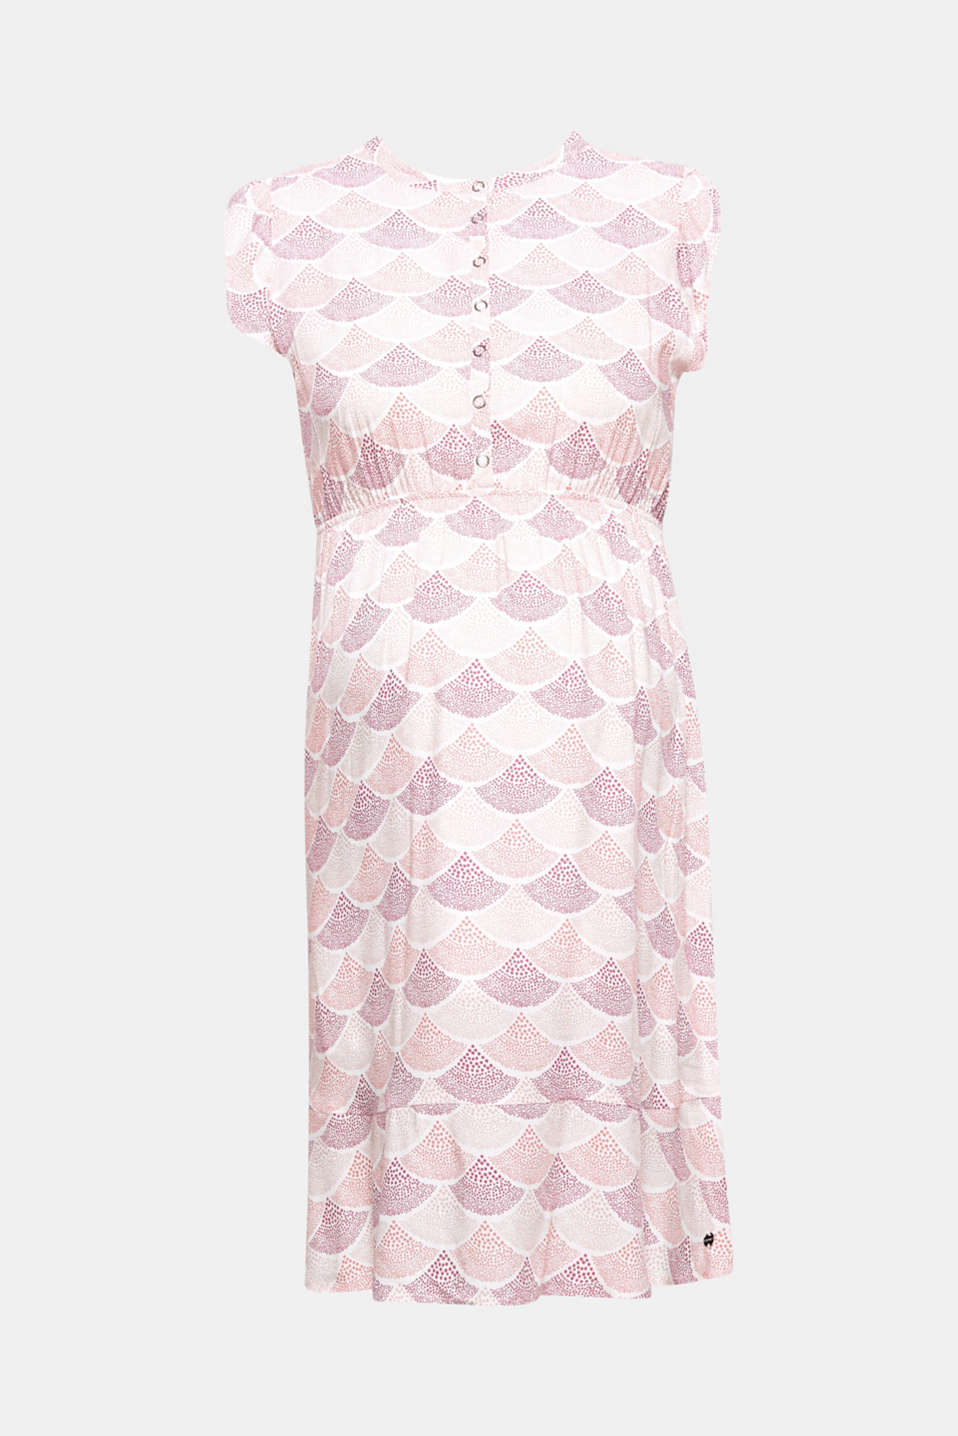 A feminine shell pattern and romantic frills: this dress with a nursing function allows for discreet nursing.